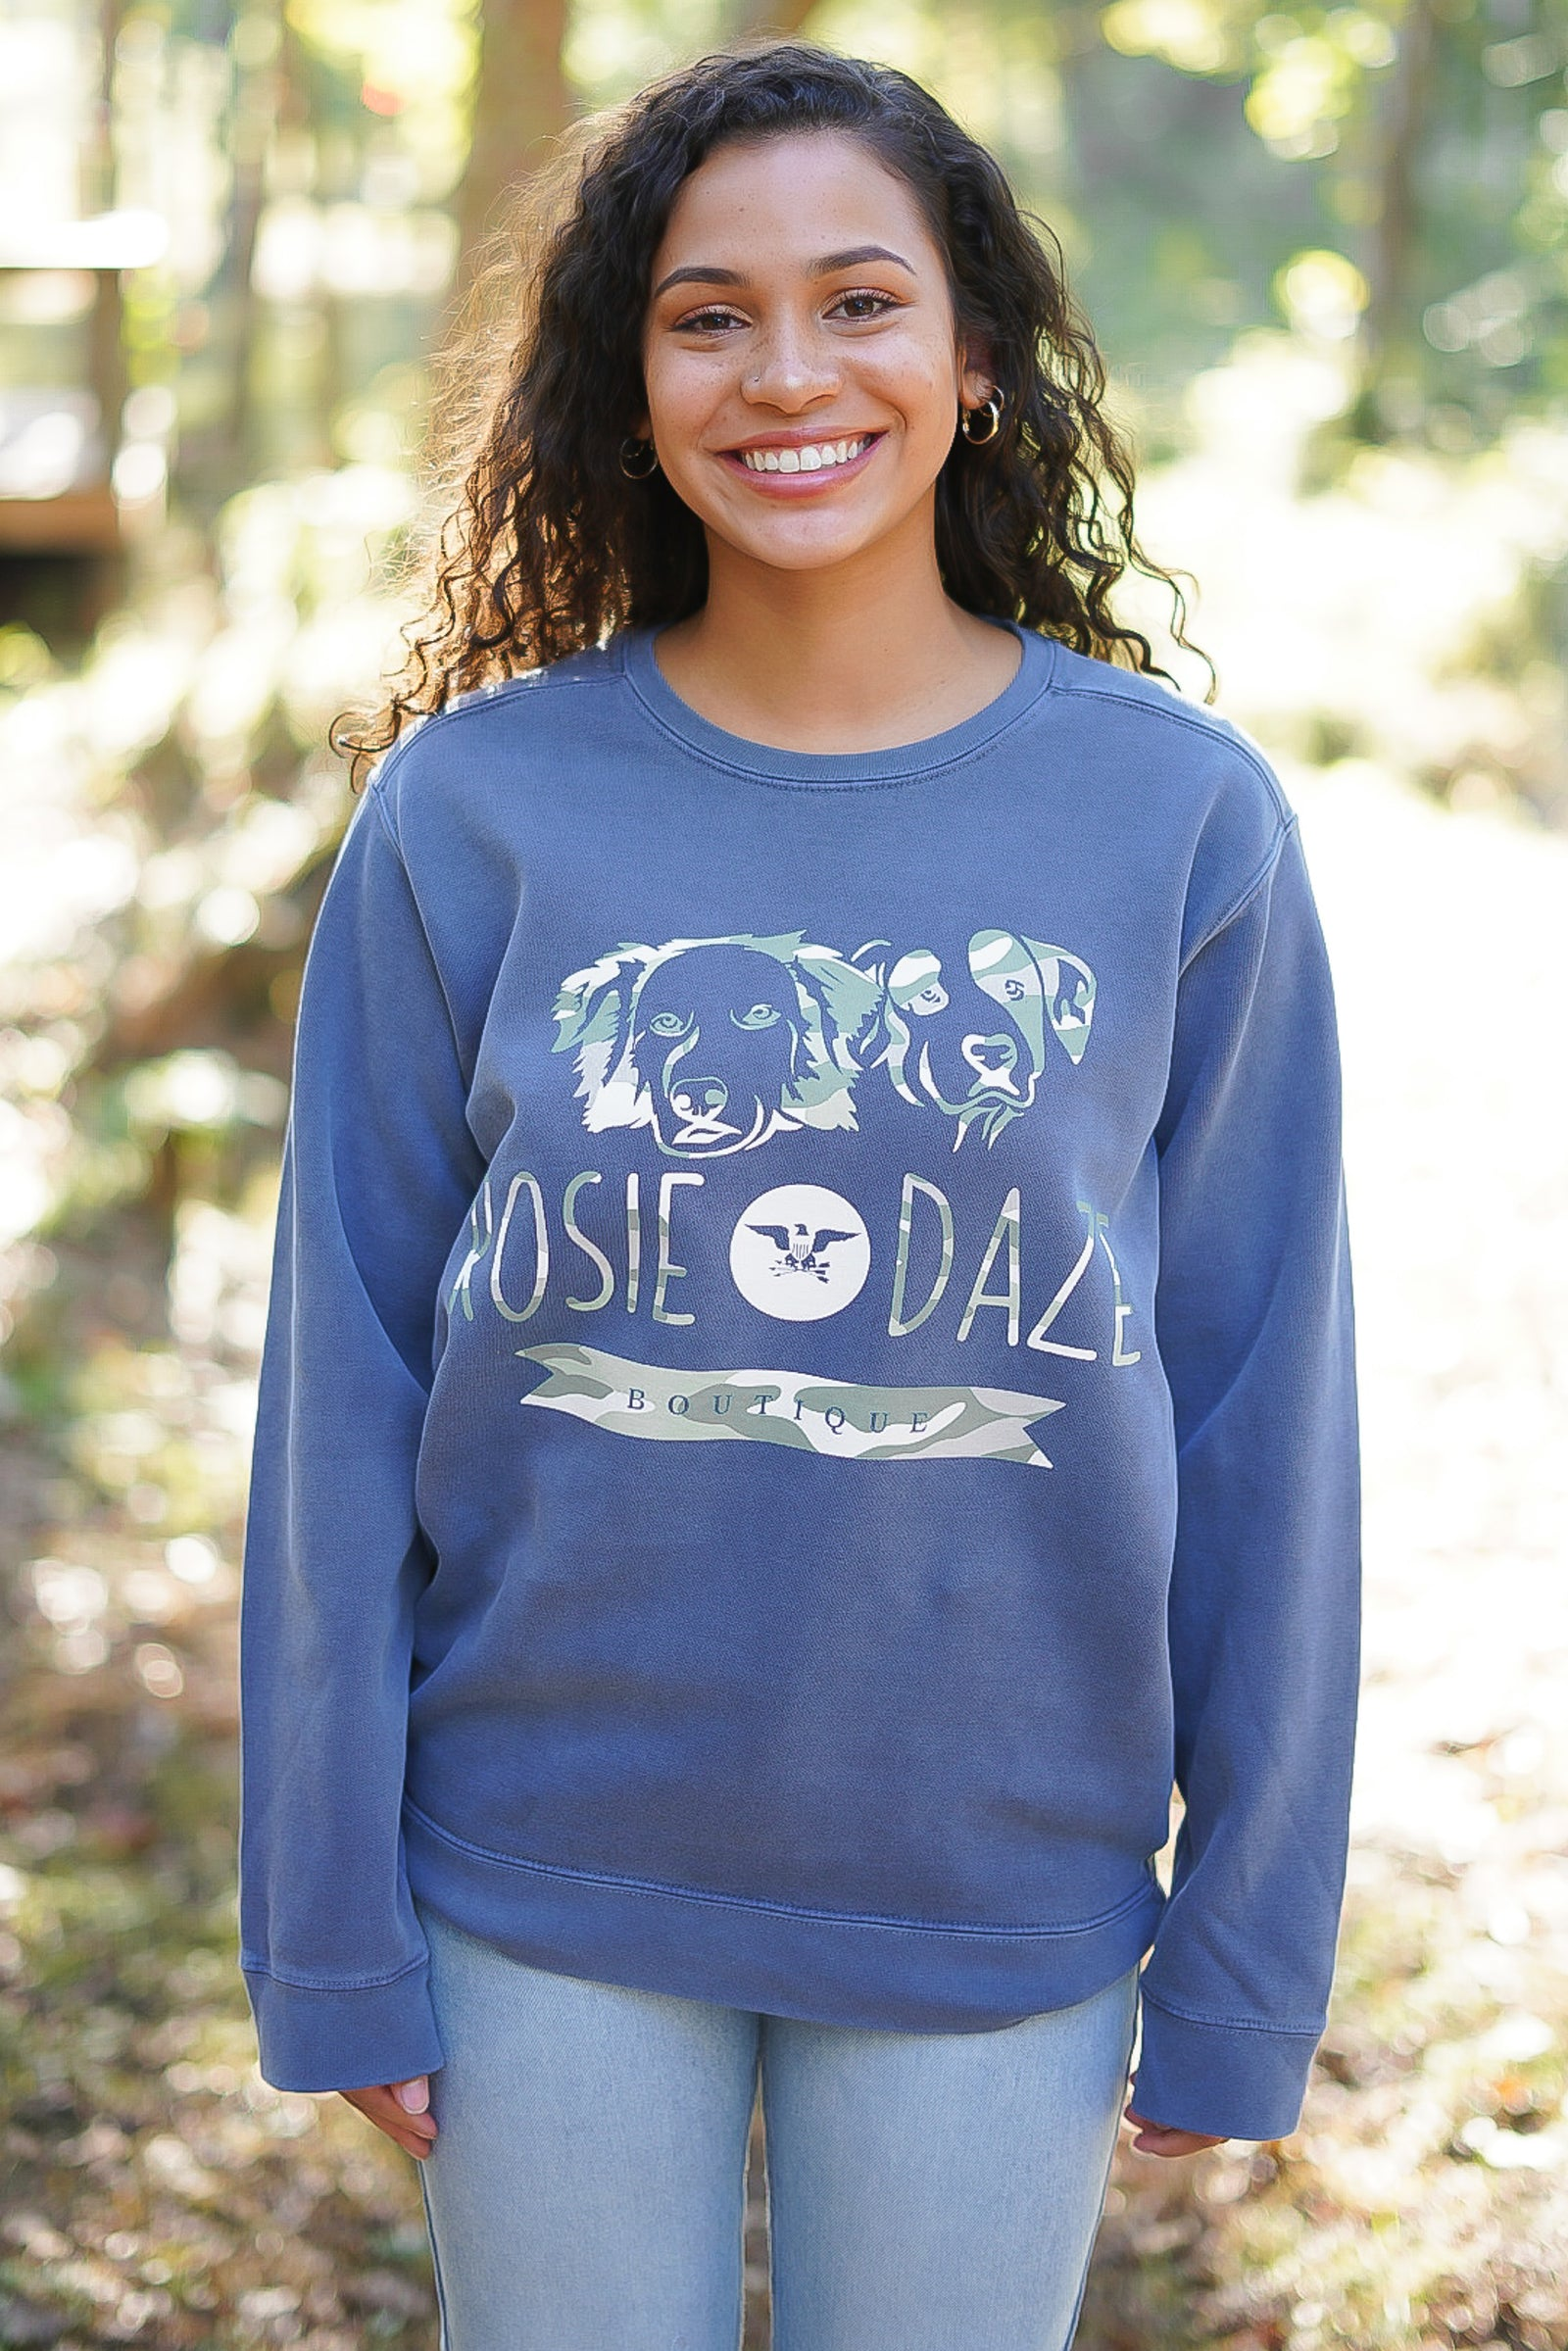 ROSIE DAZE LOGO SWEATSHIRT - LIMITED EDITION DOG LOGO